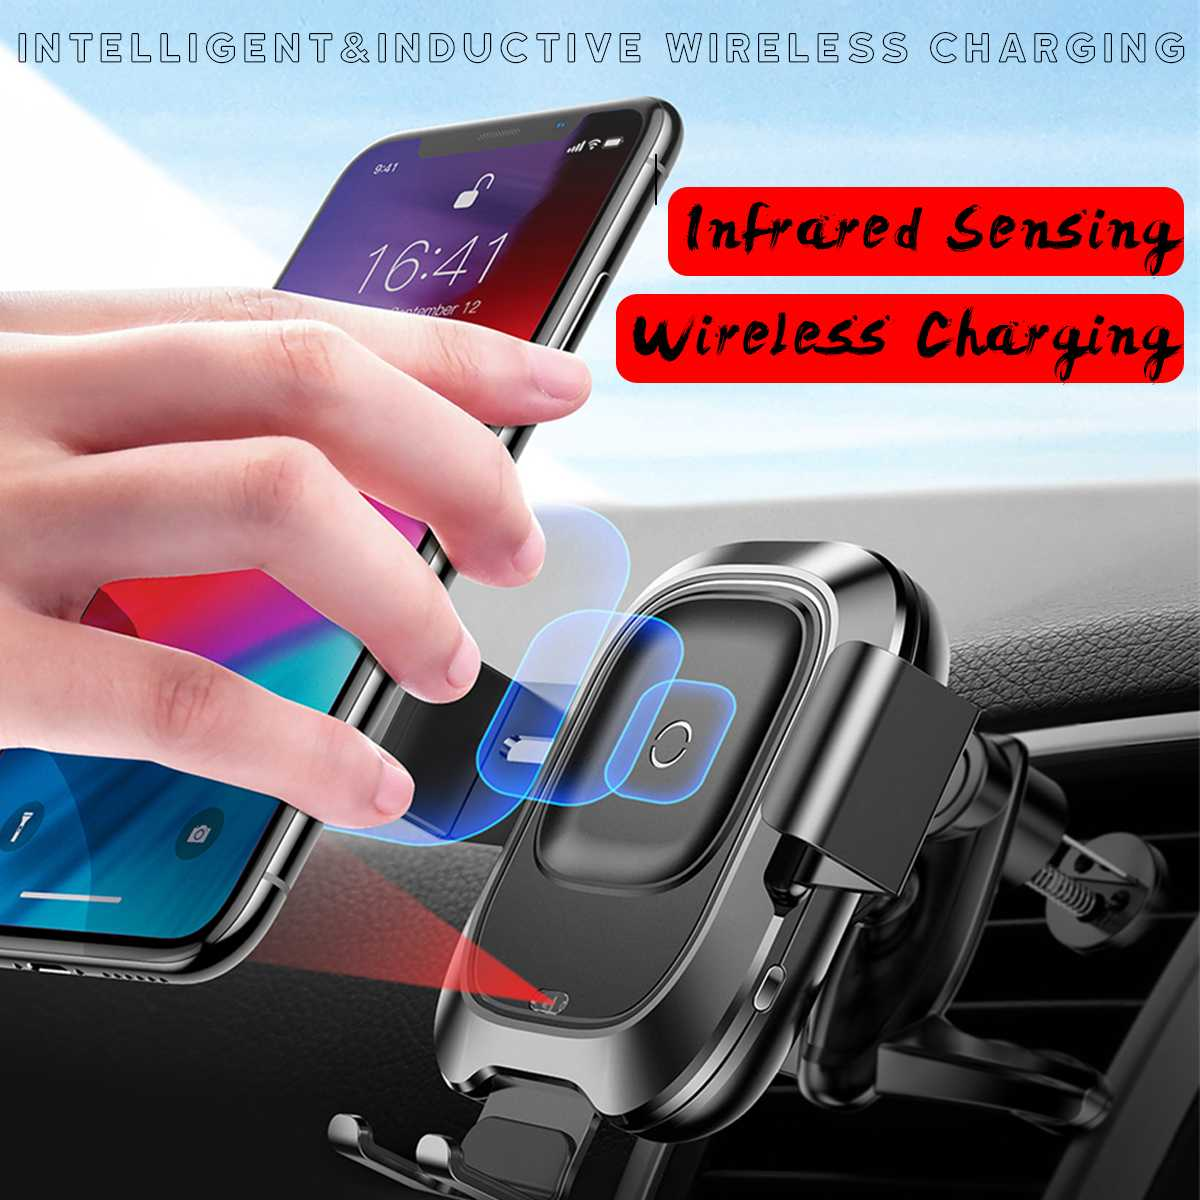 <font><b>Baseus</b></font> <font><b>Car</b></font> Wireless <font><b>Charger</b></font> For iPhone 11 Pro XS Max for Samsung S10 Intelligent Infrared Fast Wirless Charging <font><b>Car</b></font> Phone Holder image